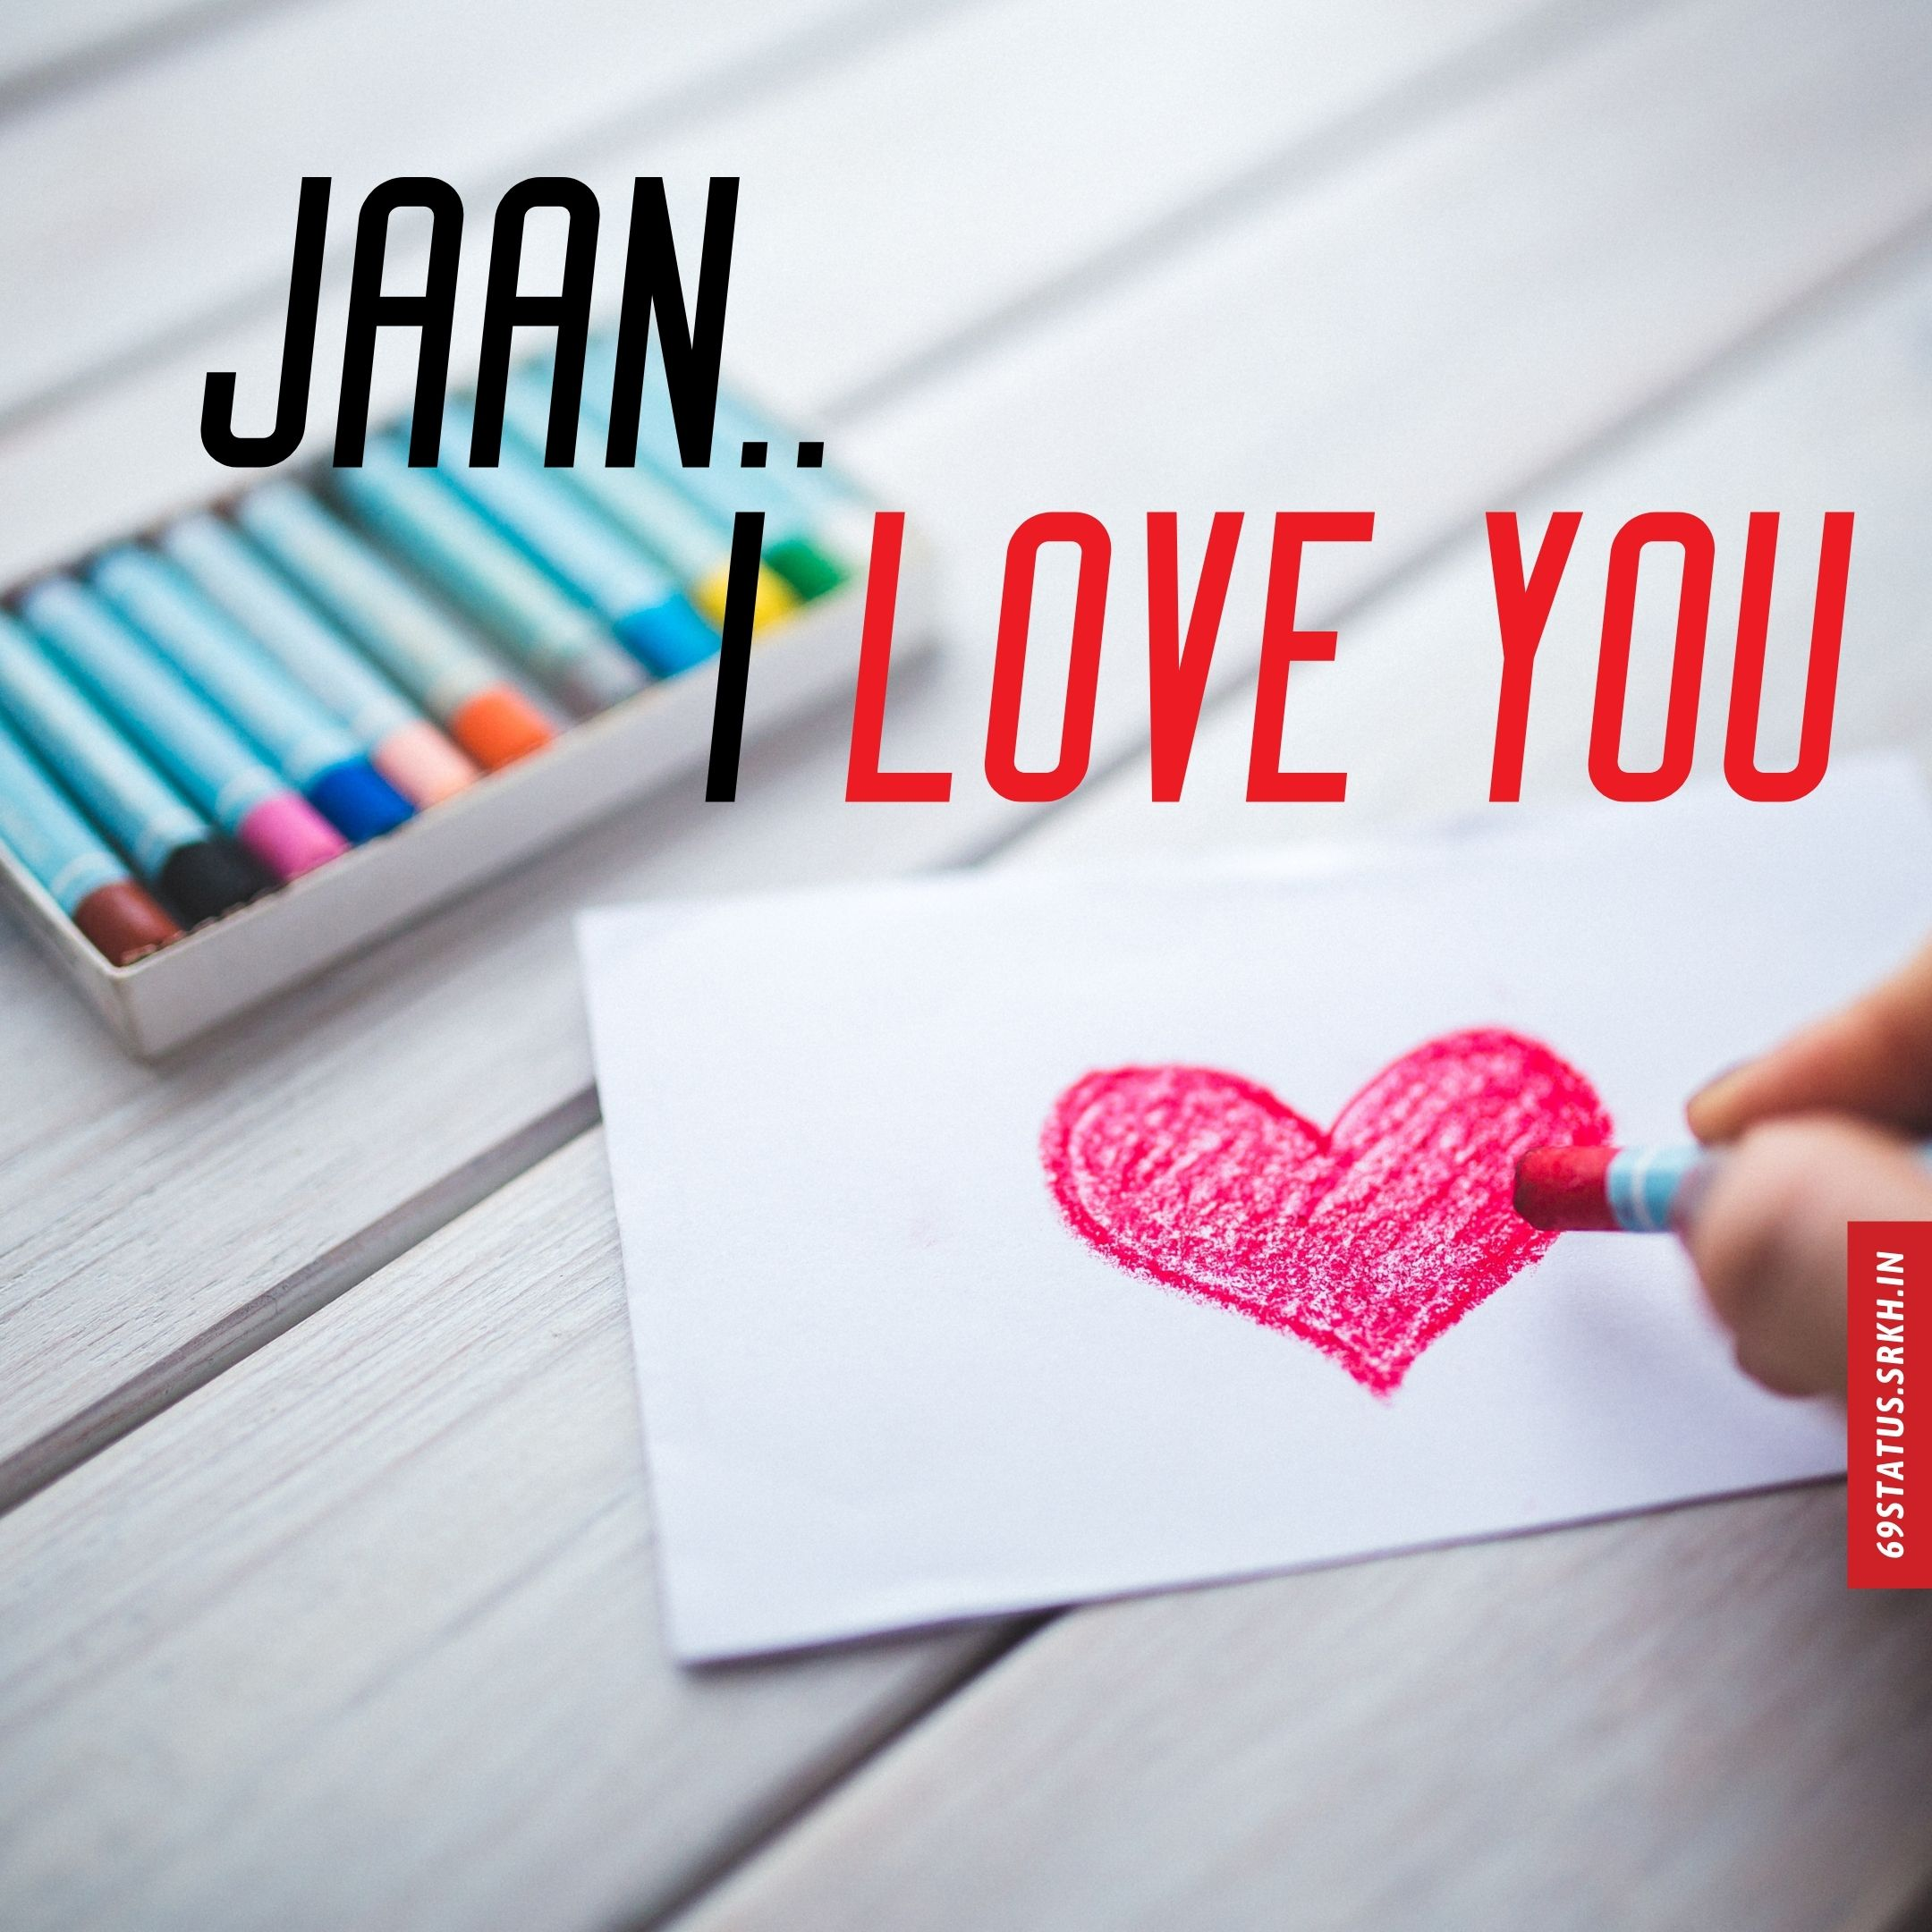 Jaan I Love You images full HD free download.